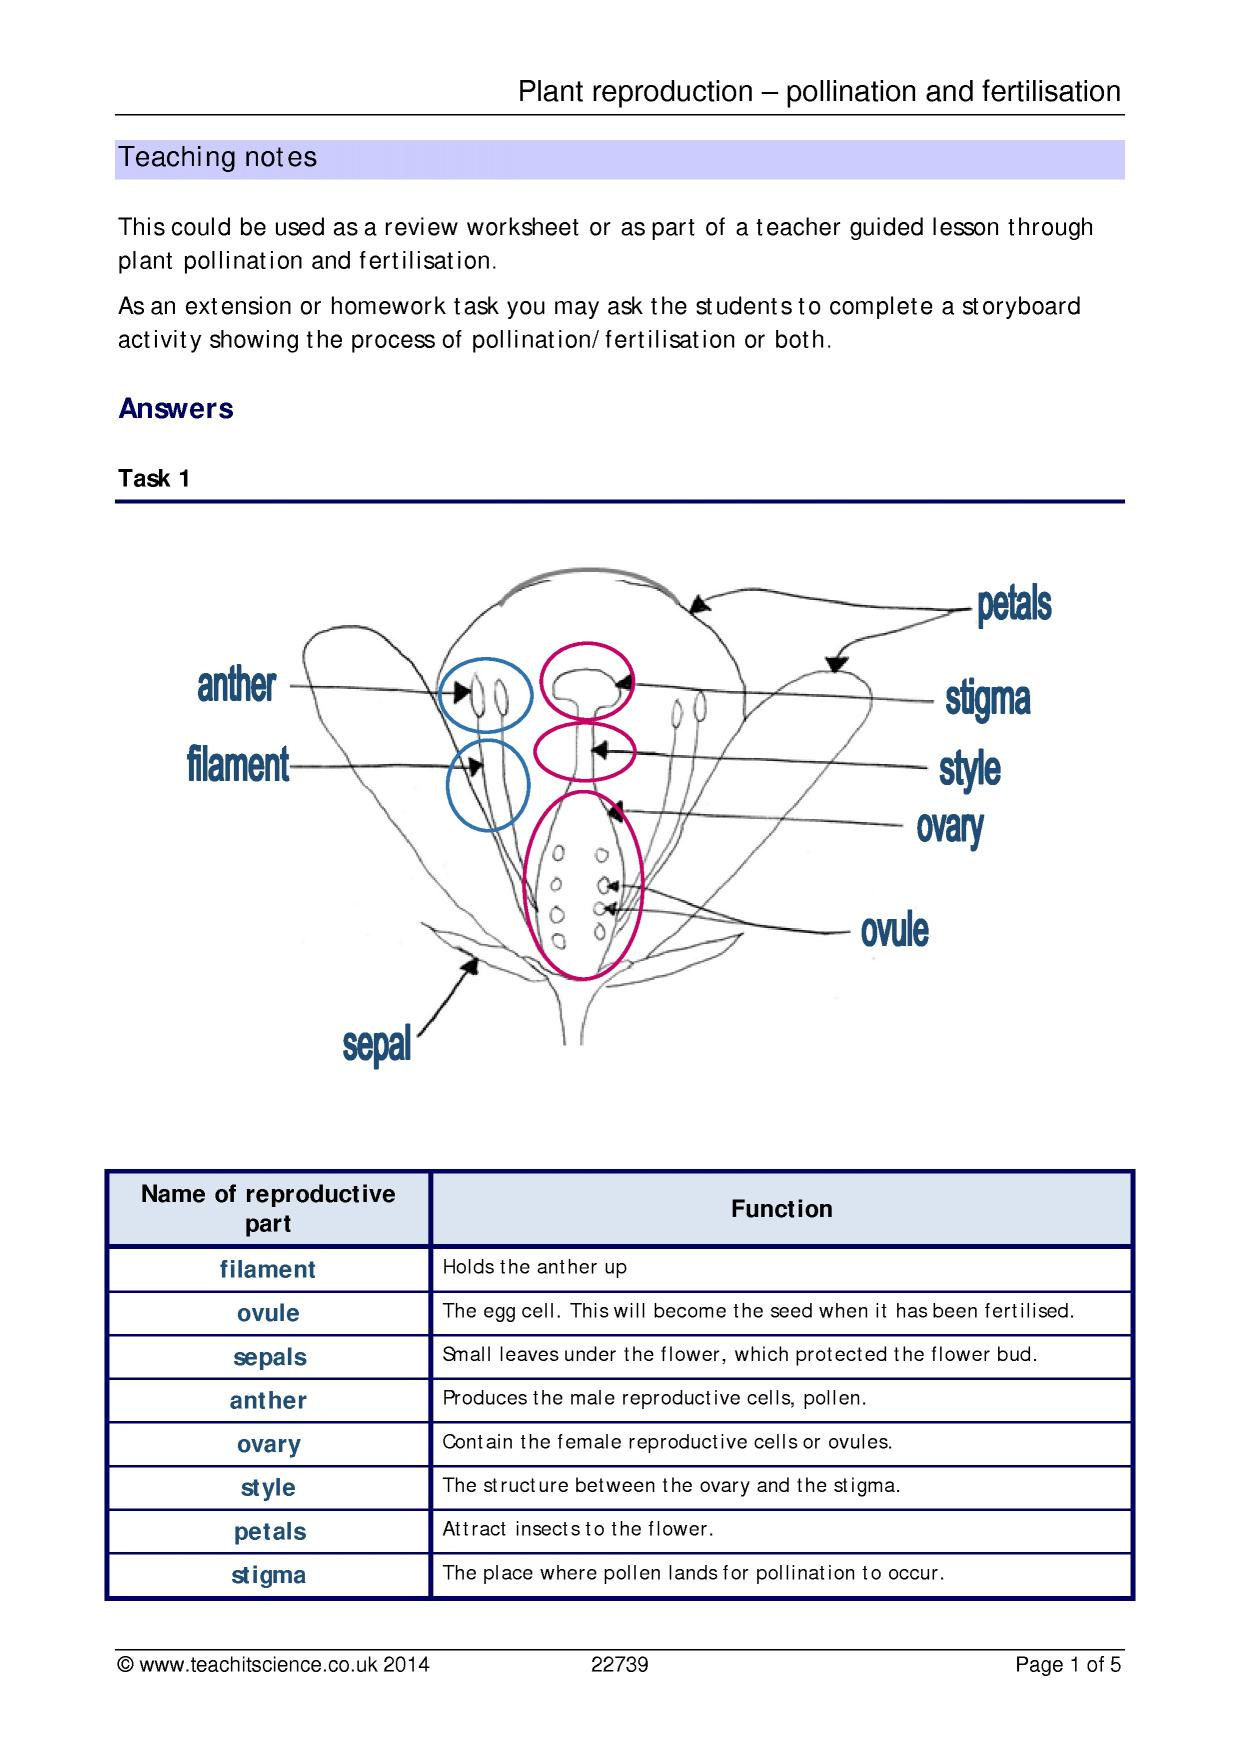 parts of a seed diagram worksheet 4 pole trailer wiring plant reproduction pollination and fertilisation